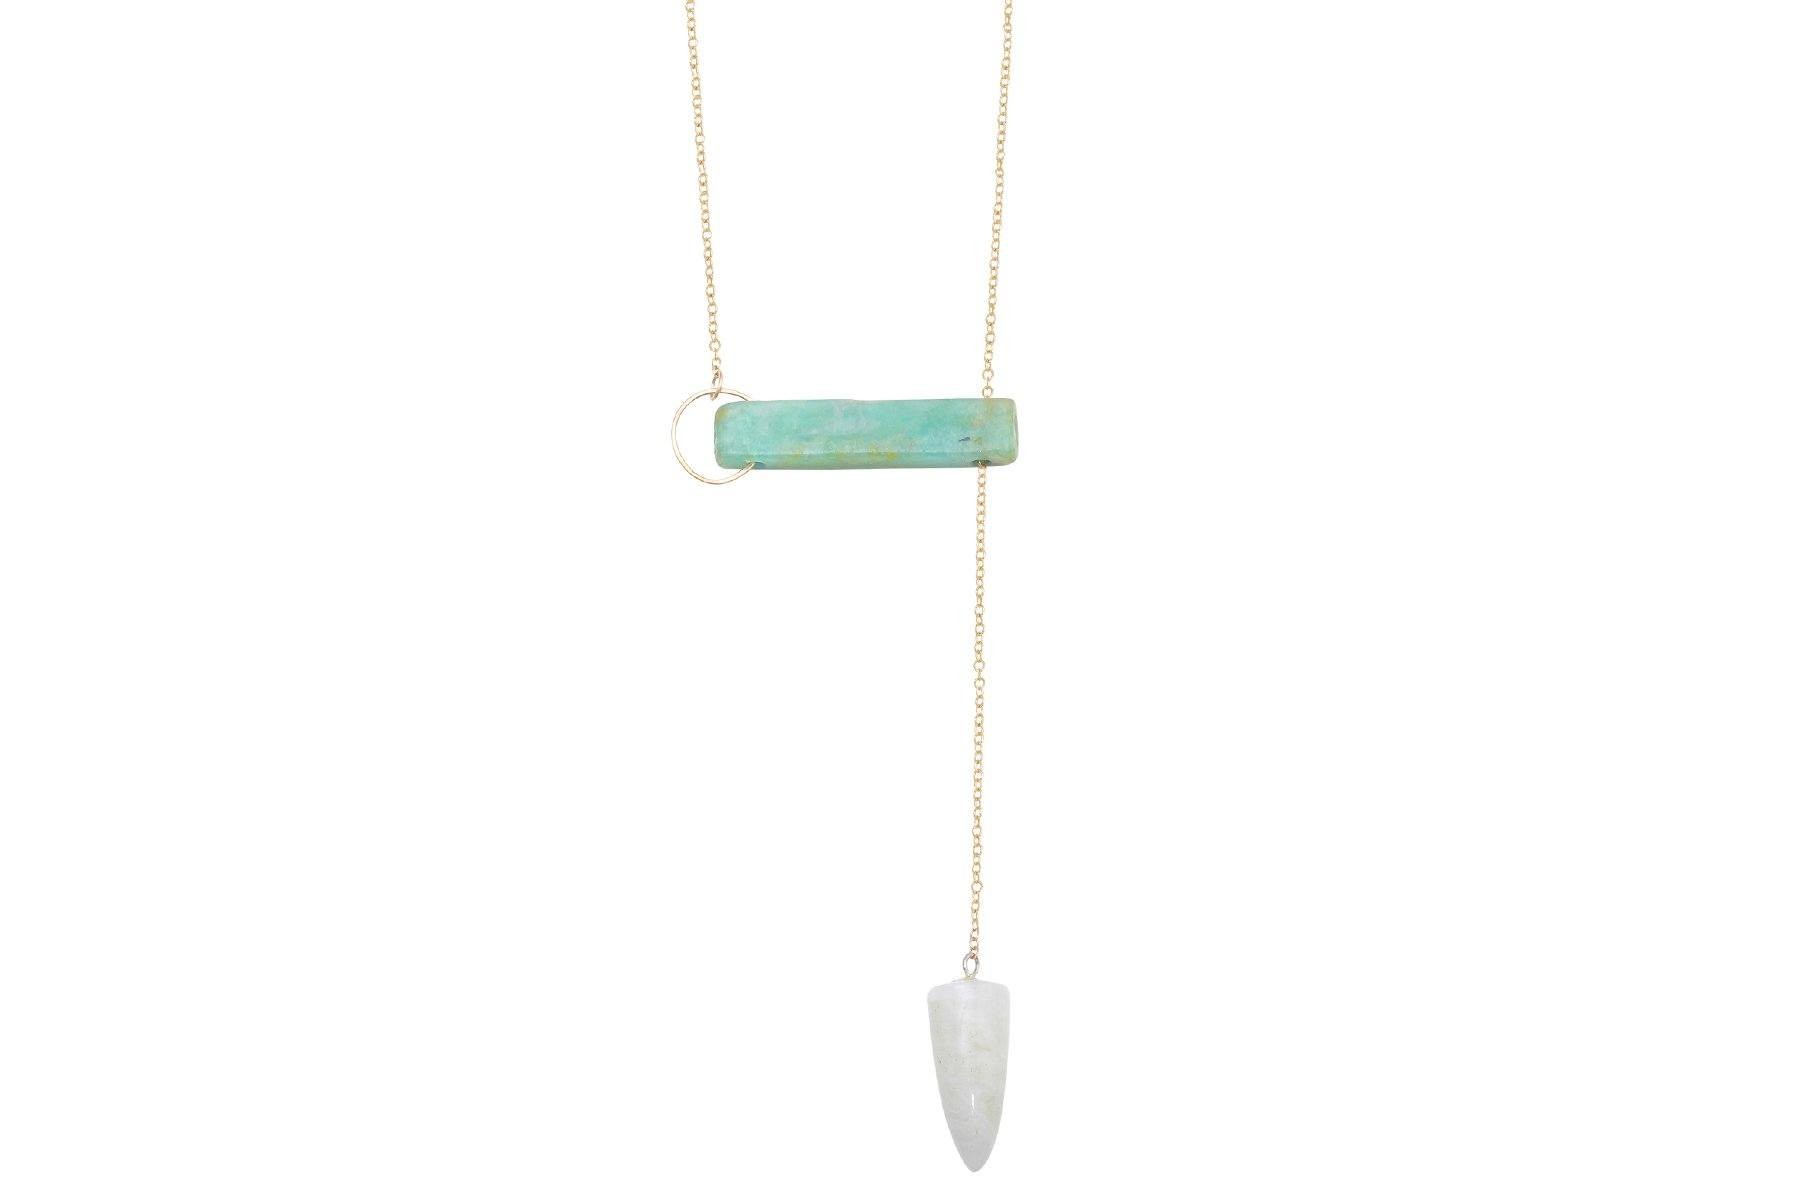 InSync necklace - Amazonite Bar & Rainbow Moonstone Pendulum - Amanda K Lockrow